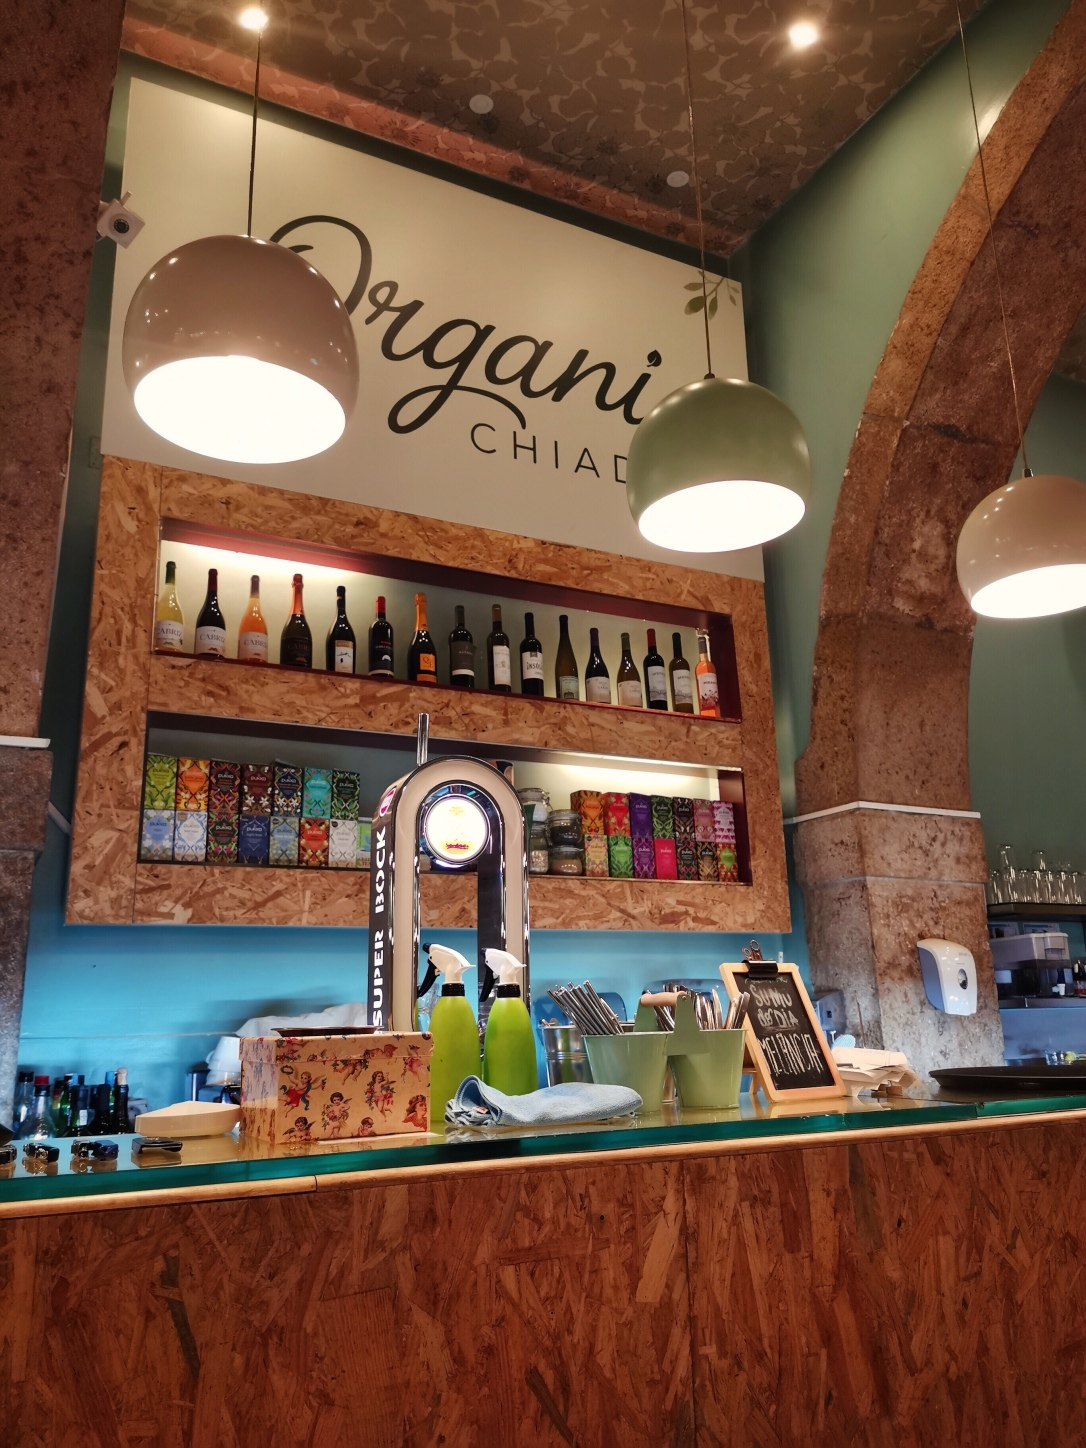 Where to eat vegan in Lisbon - Organi Chiado